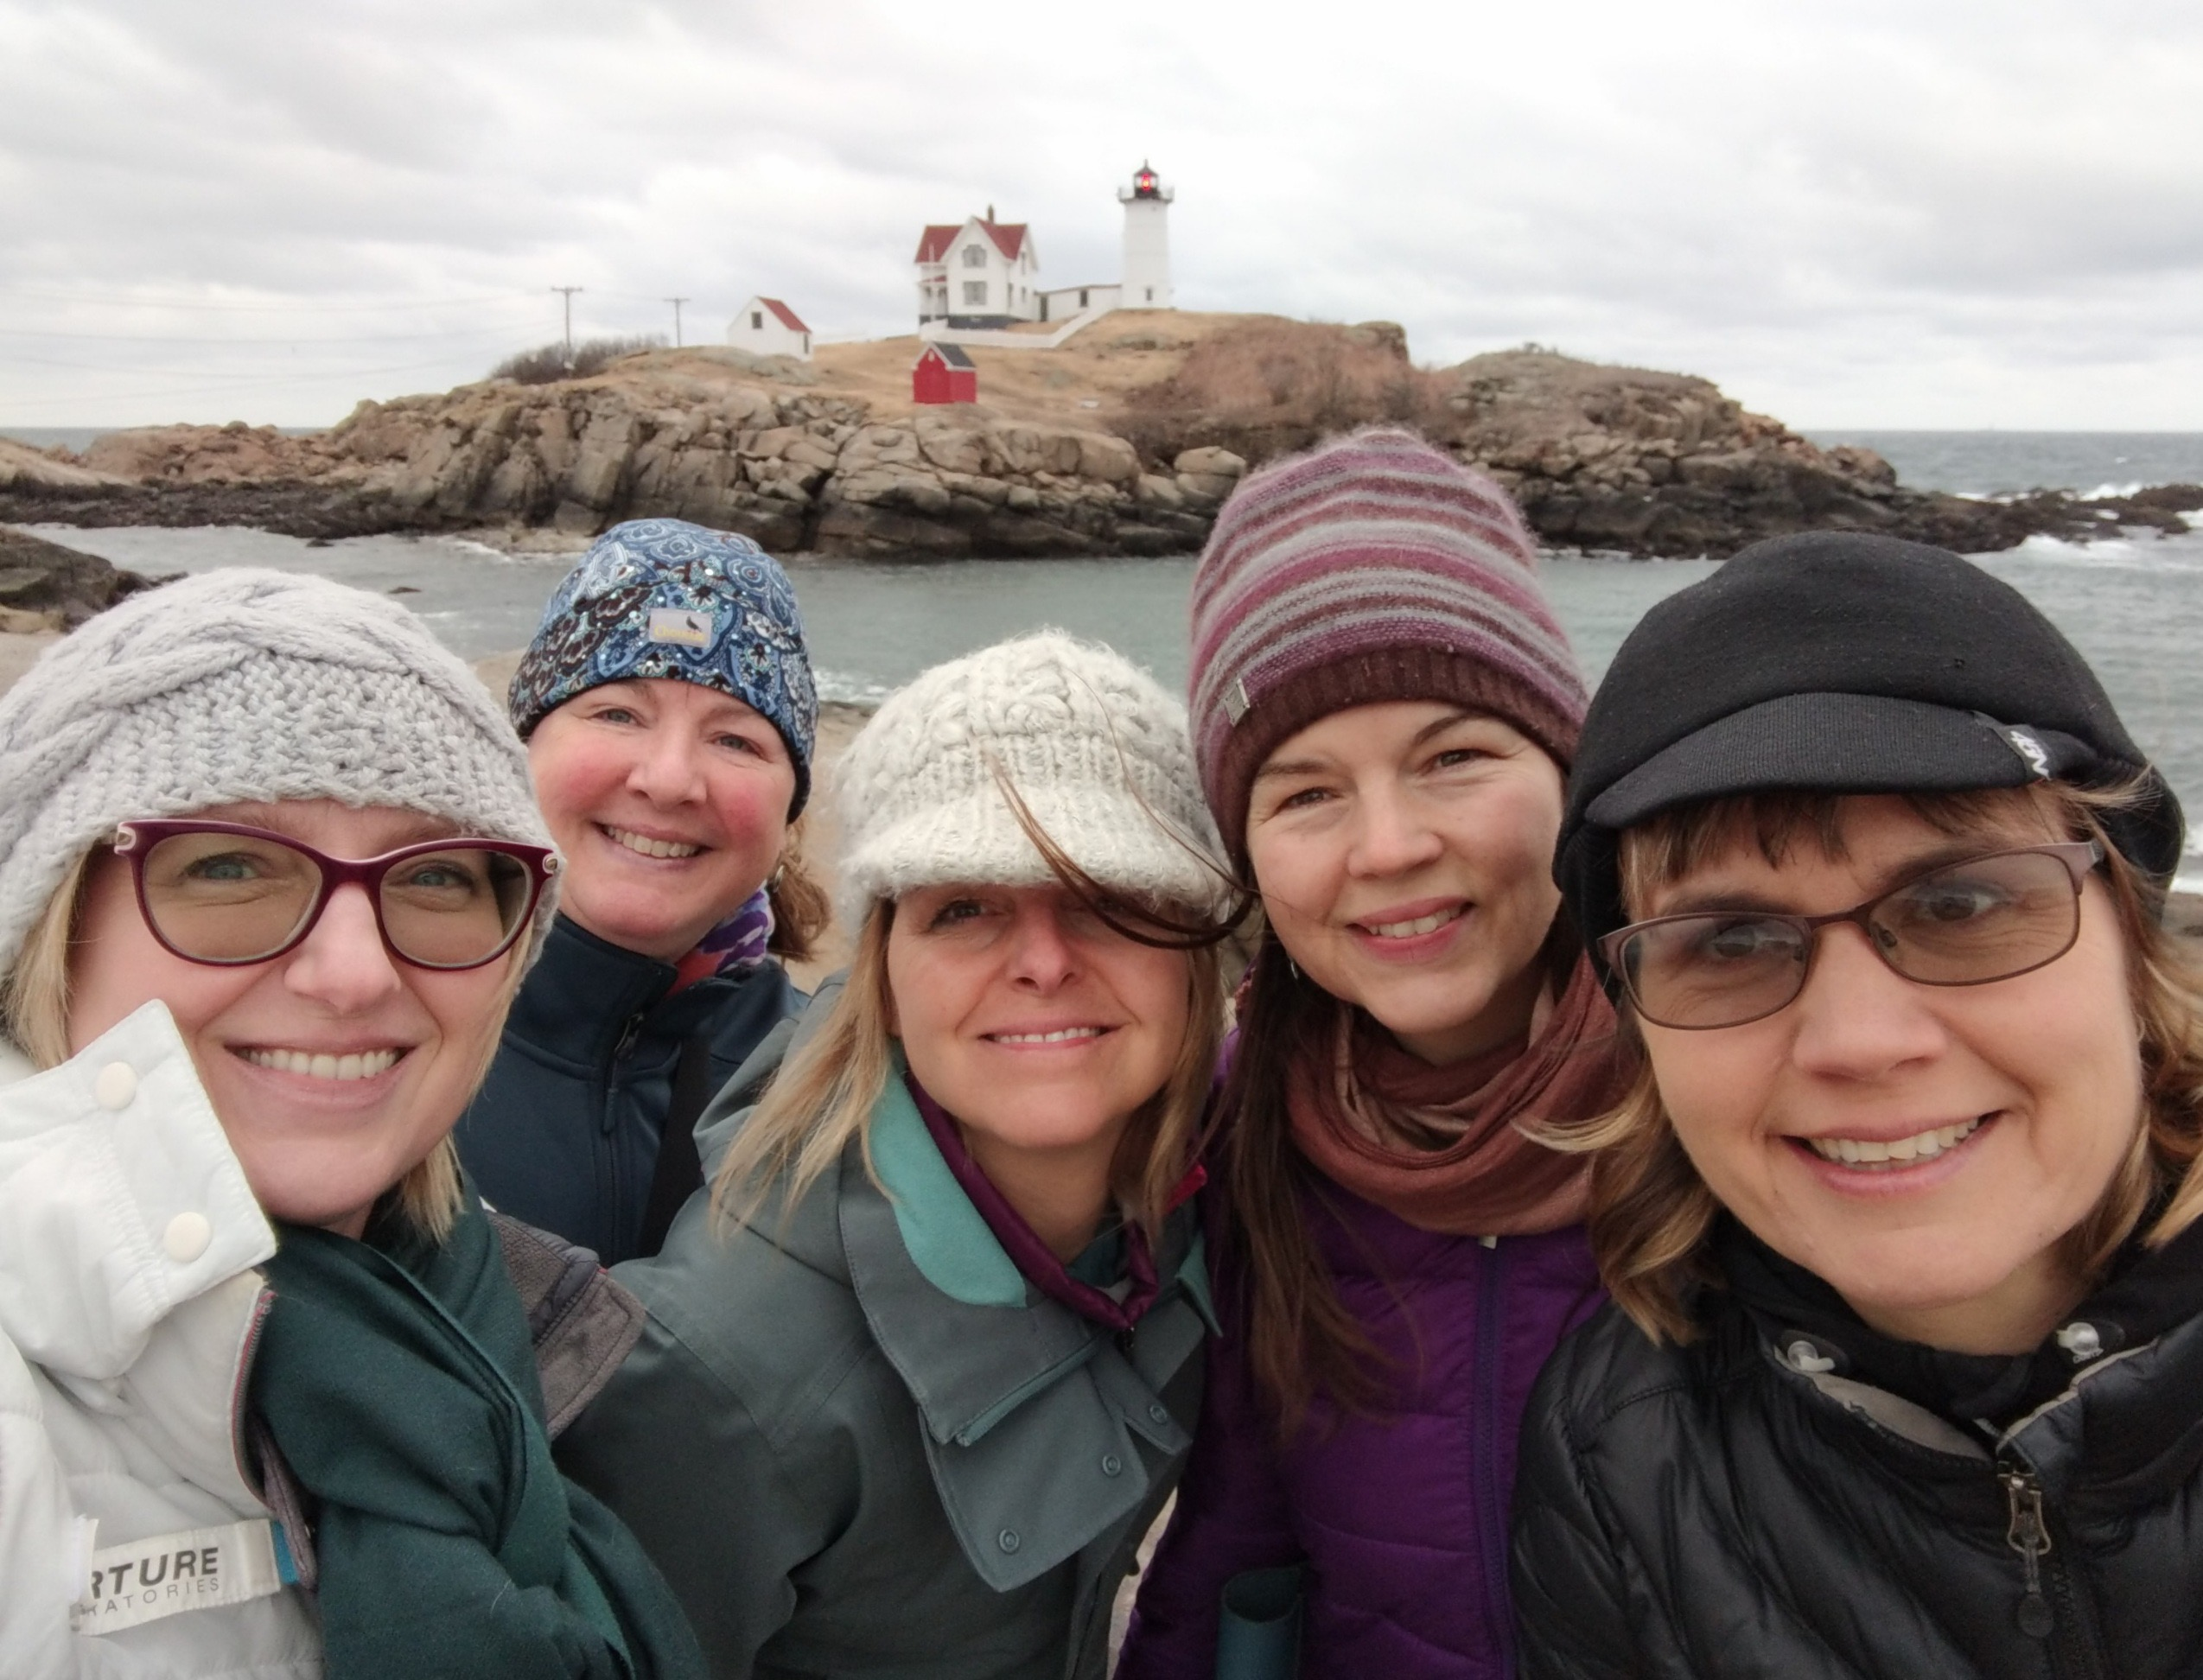 Kathy, me, Michele, Lisa and Rachel in front of the Nubble lighthouse (before Kim and Norah arrived).